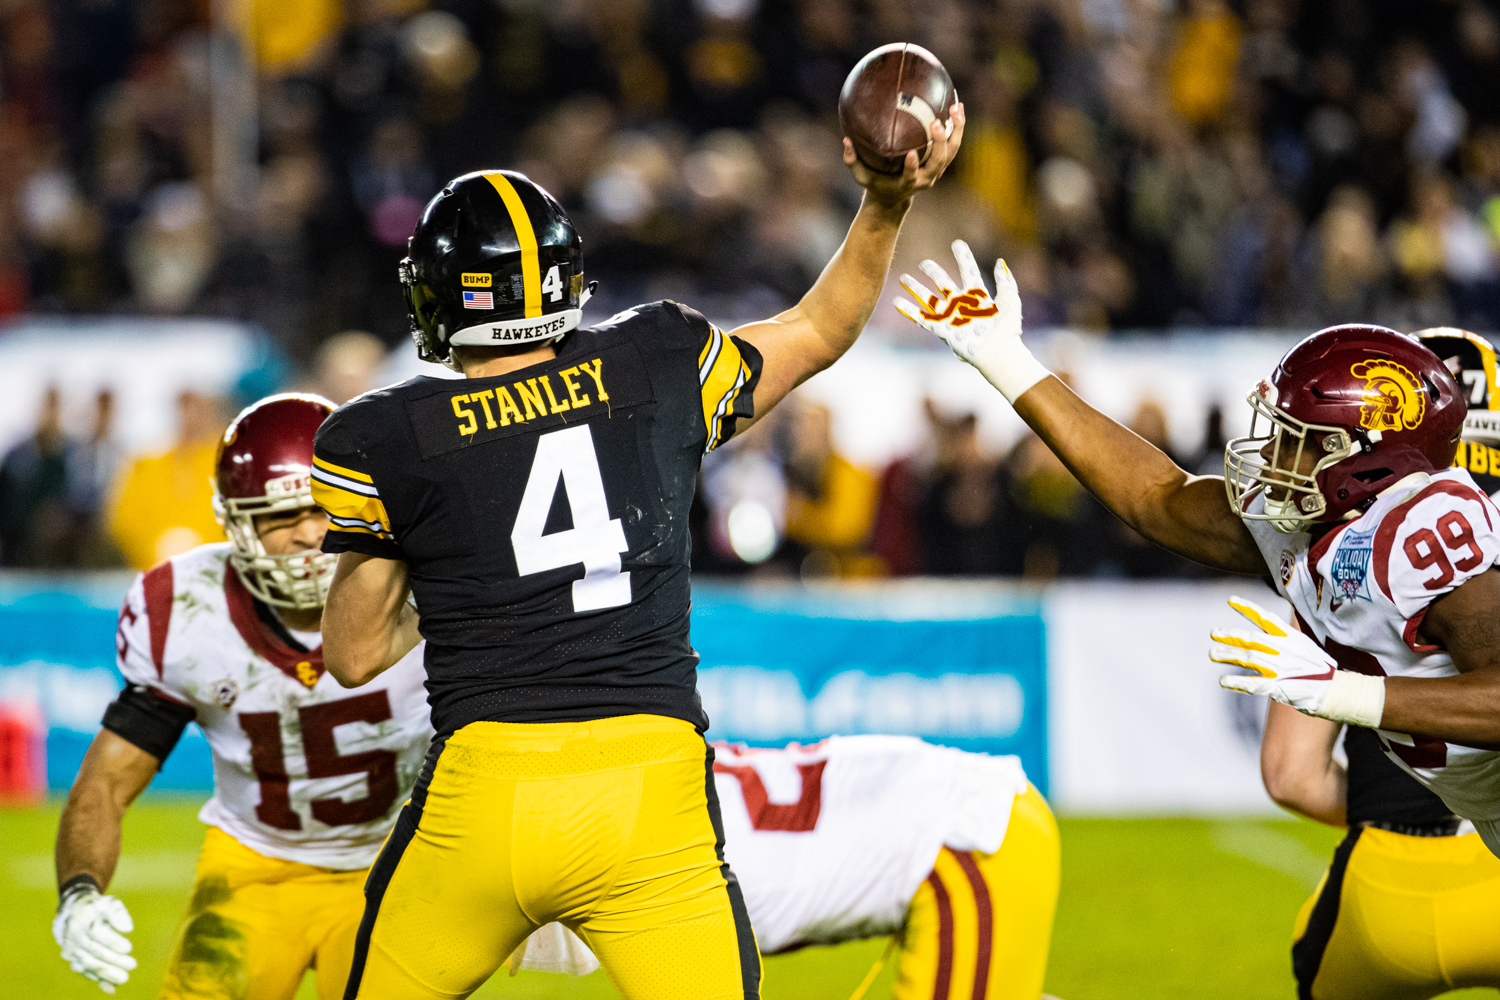 Iowa quarterback Nate Stanley attempts a pass during the 2019 SDCCU Holiday Bowl between Iowa and USC in San Diego on Friday, Dec. 27, 2019. Stanley finished with a 67% completion rate for 213 yards.